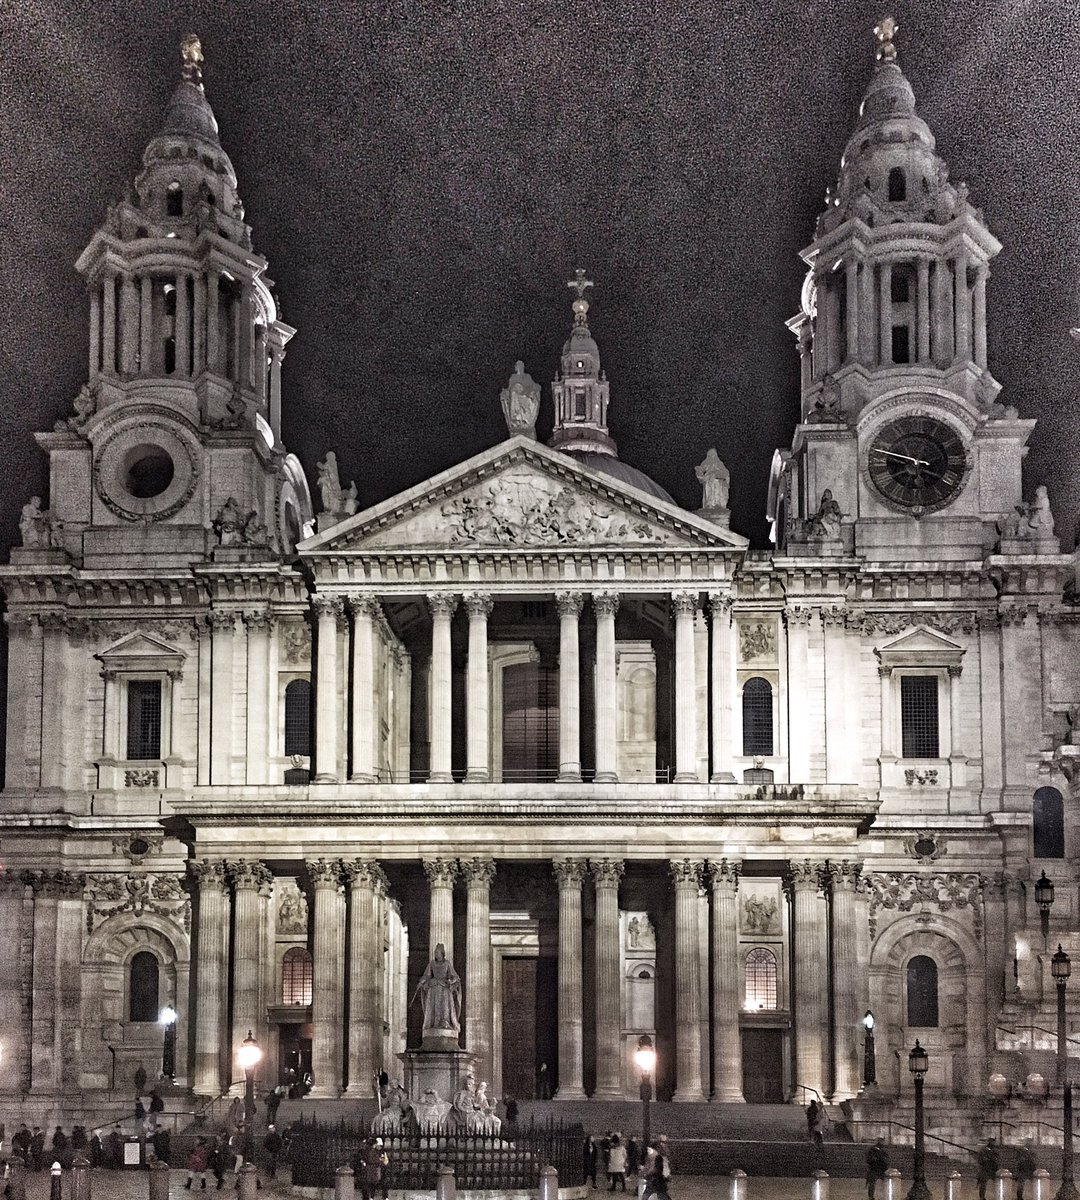 A busy week with poor old Queen Anne, subject of much unjust opprobrium. Can you spot her lurking there on the steps of St Paul's? 'Brandy Nan, left in the lurch, face to the gin shop, back to the church.'